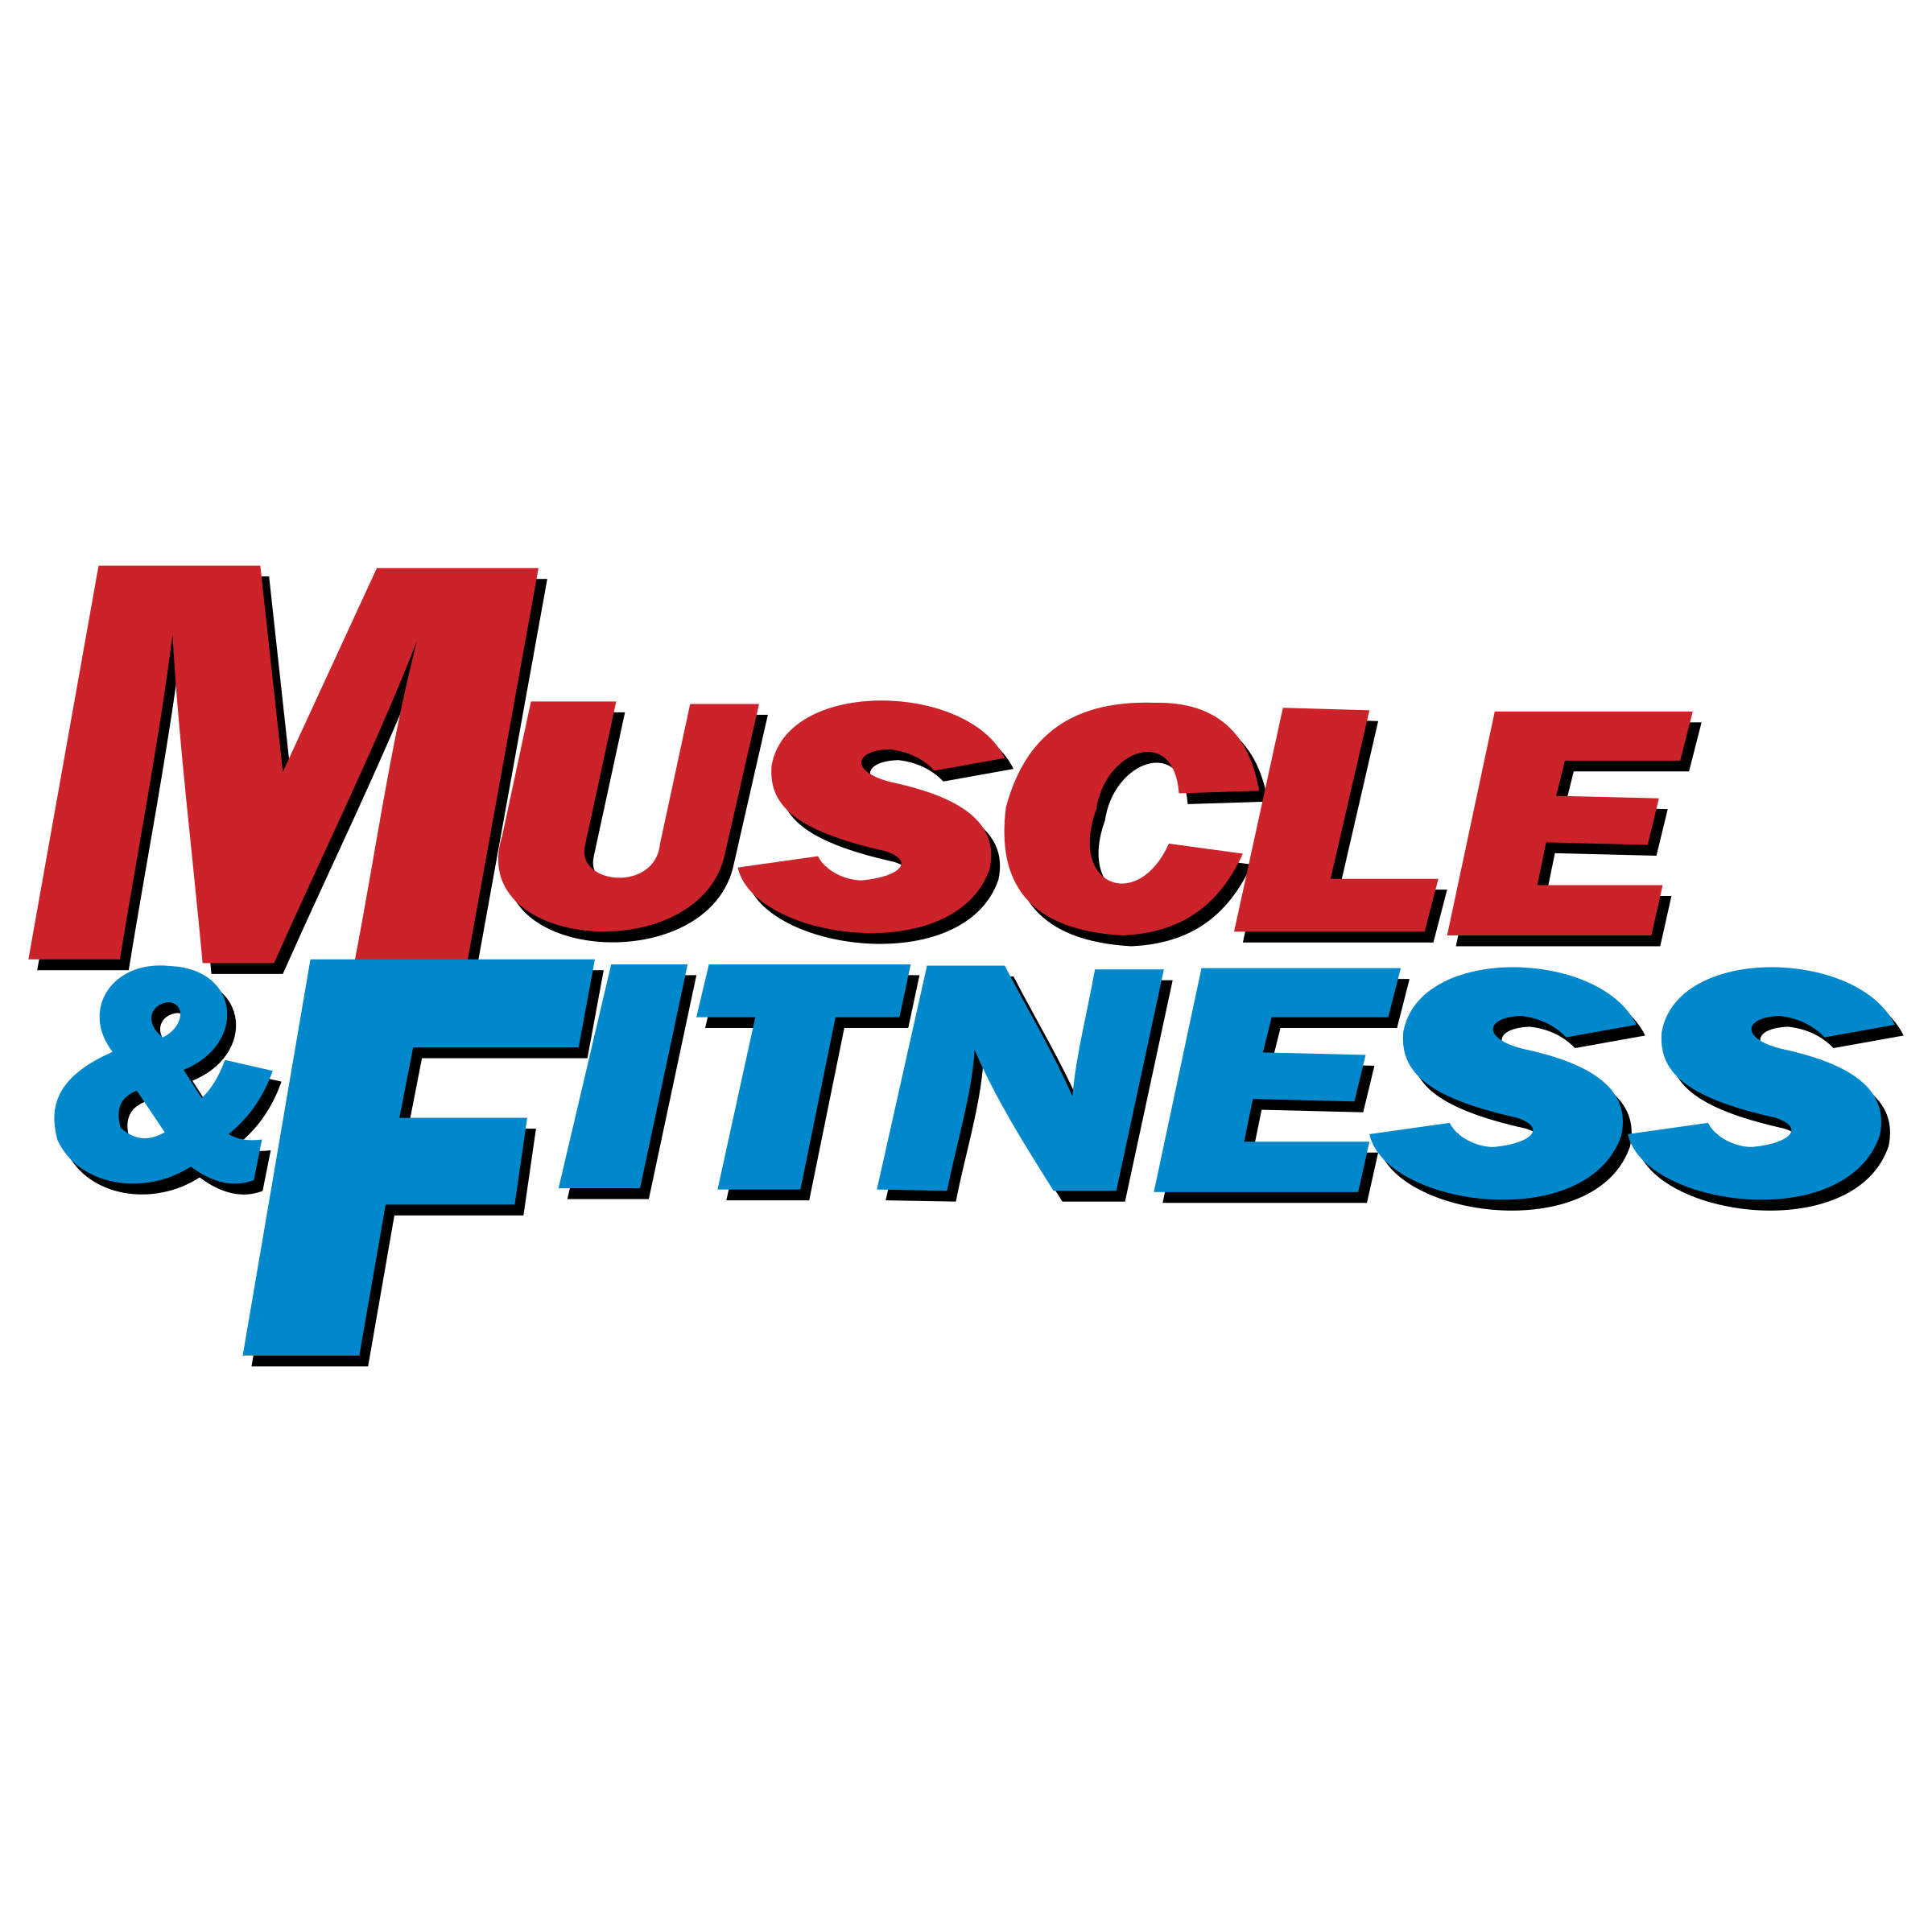 Muscle logo png. Fitness transparent svg vector